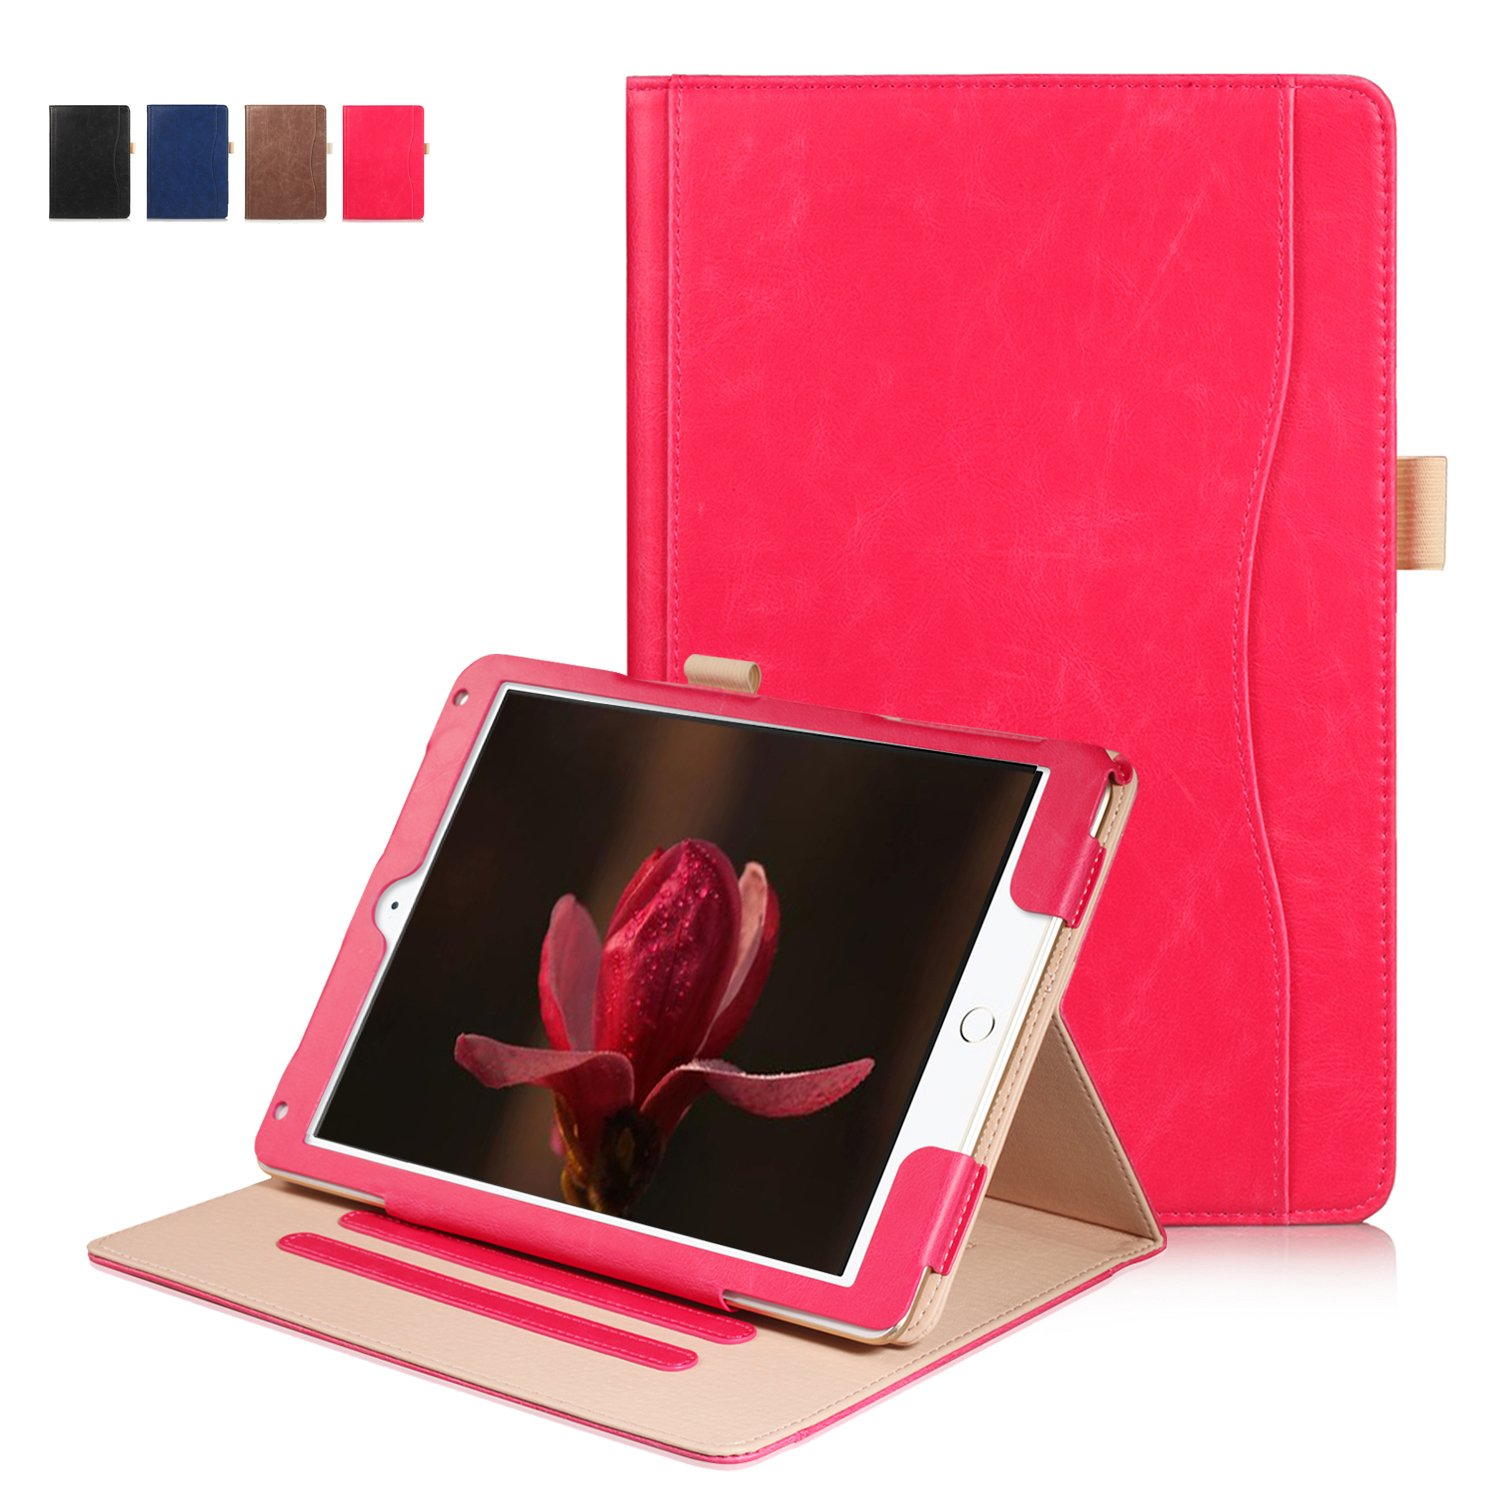 IPad Pro 10.5 inch Case 2017,Direct Premium Leather Business Multi-Functional Folio Stand Cover Hand Strap Pencil Holder Card Pocket Hand Strap Smart Auto Wake & Sleep (Red)